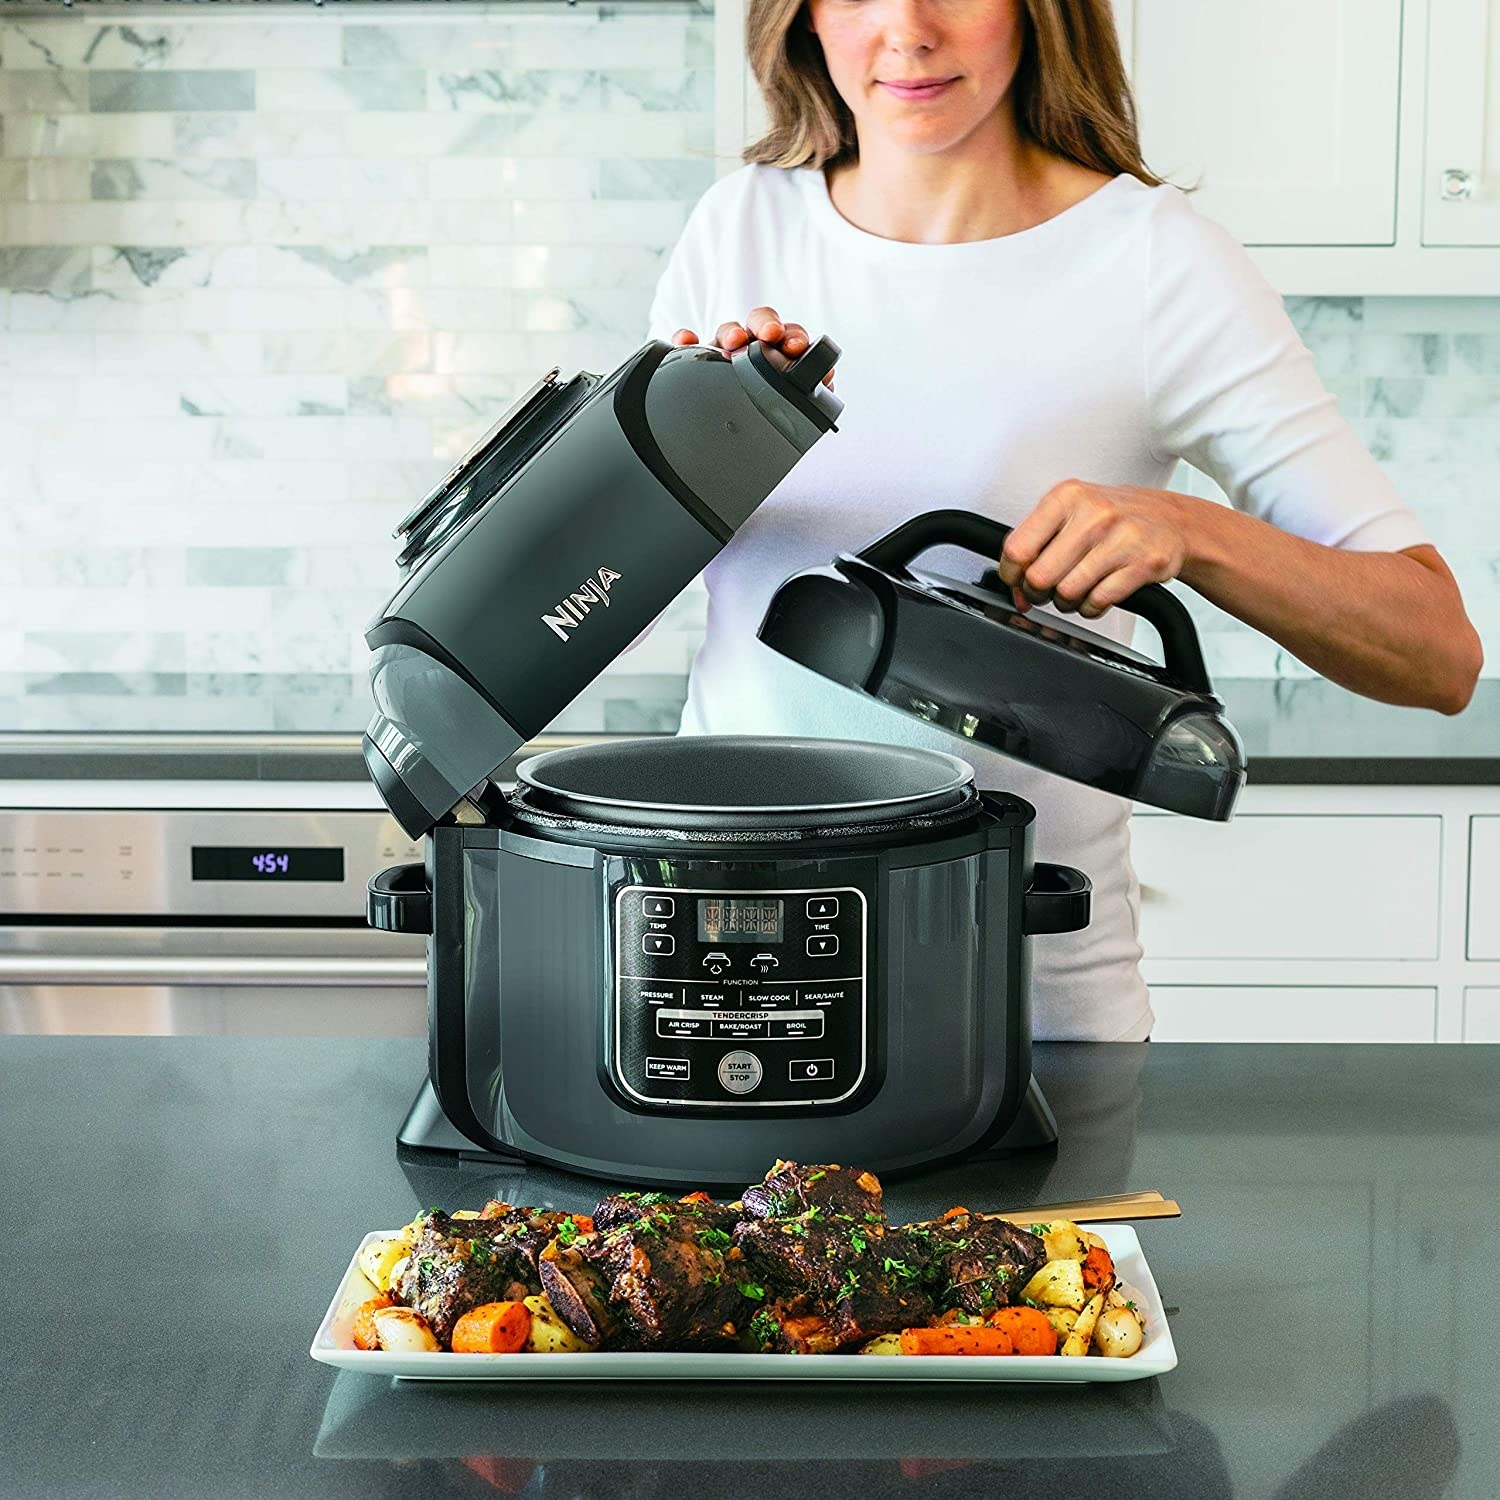 Make Space In Your Kitchen Because The Ninja Pressure Cooker Is 130 Off For Black Friday